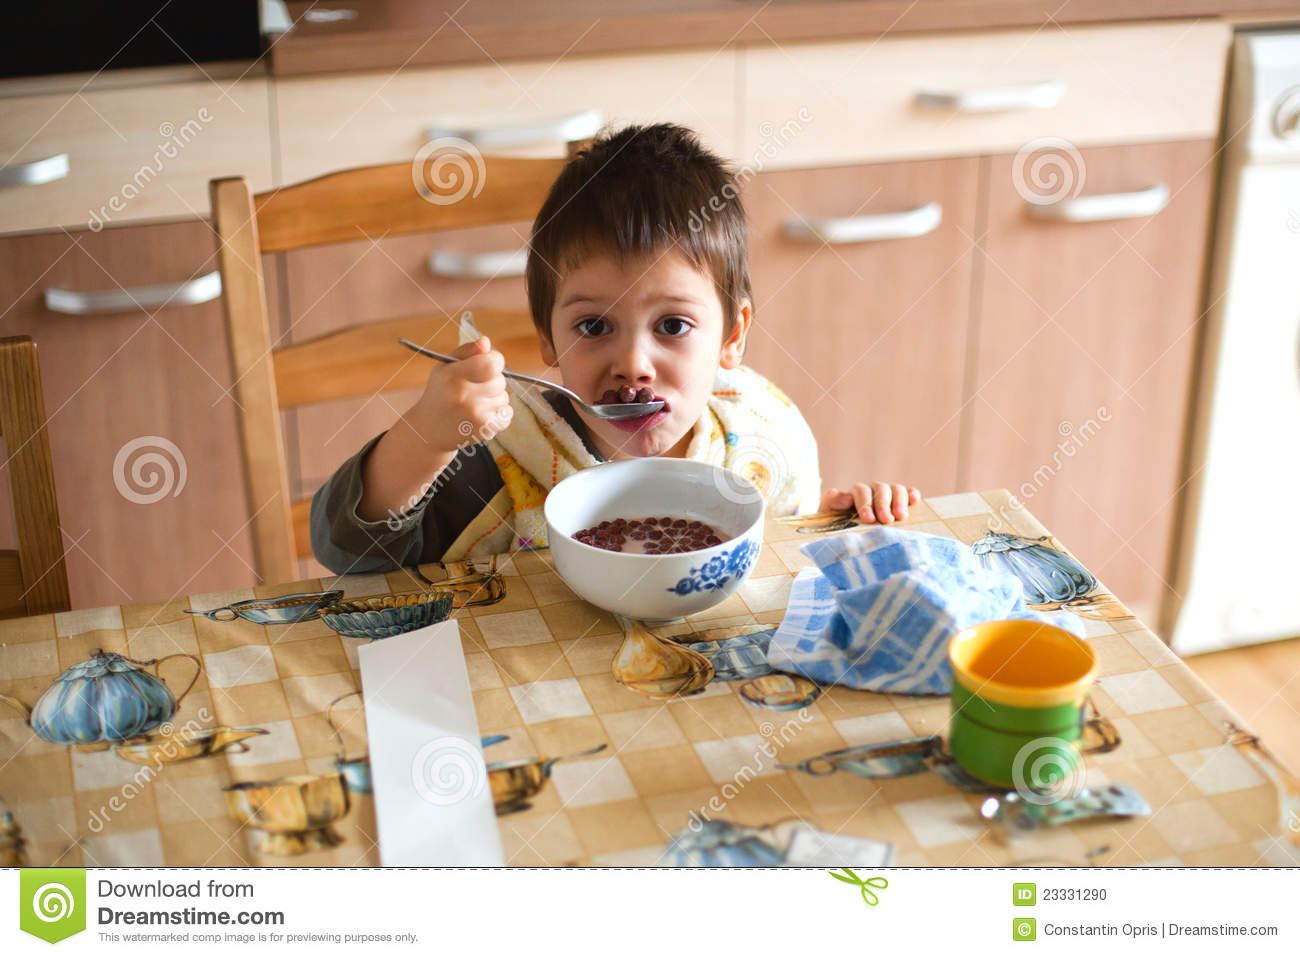 Child Having Breakfast Stock Photo Image 23331290